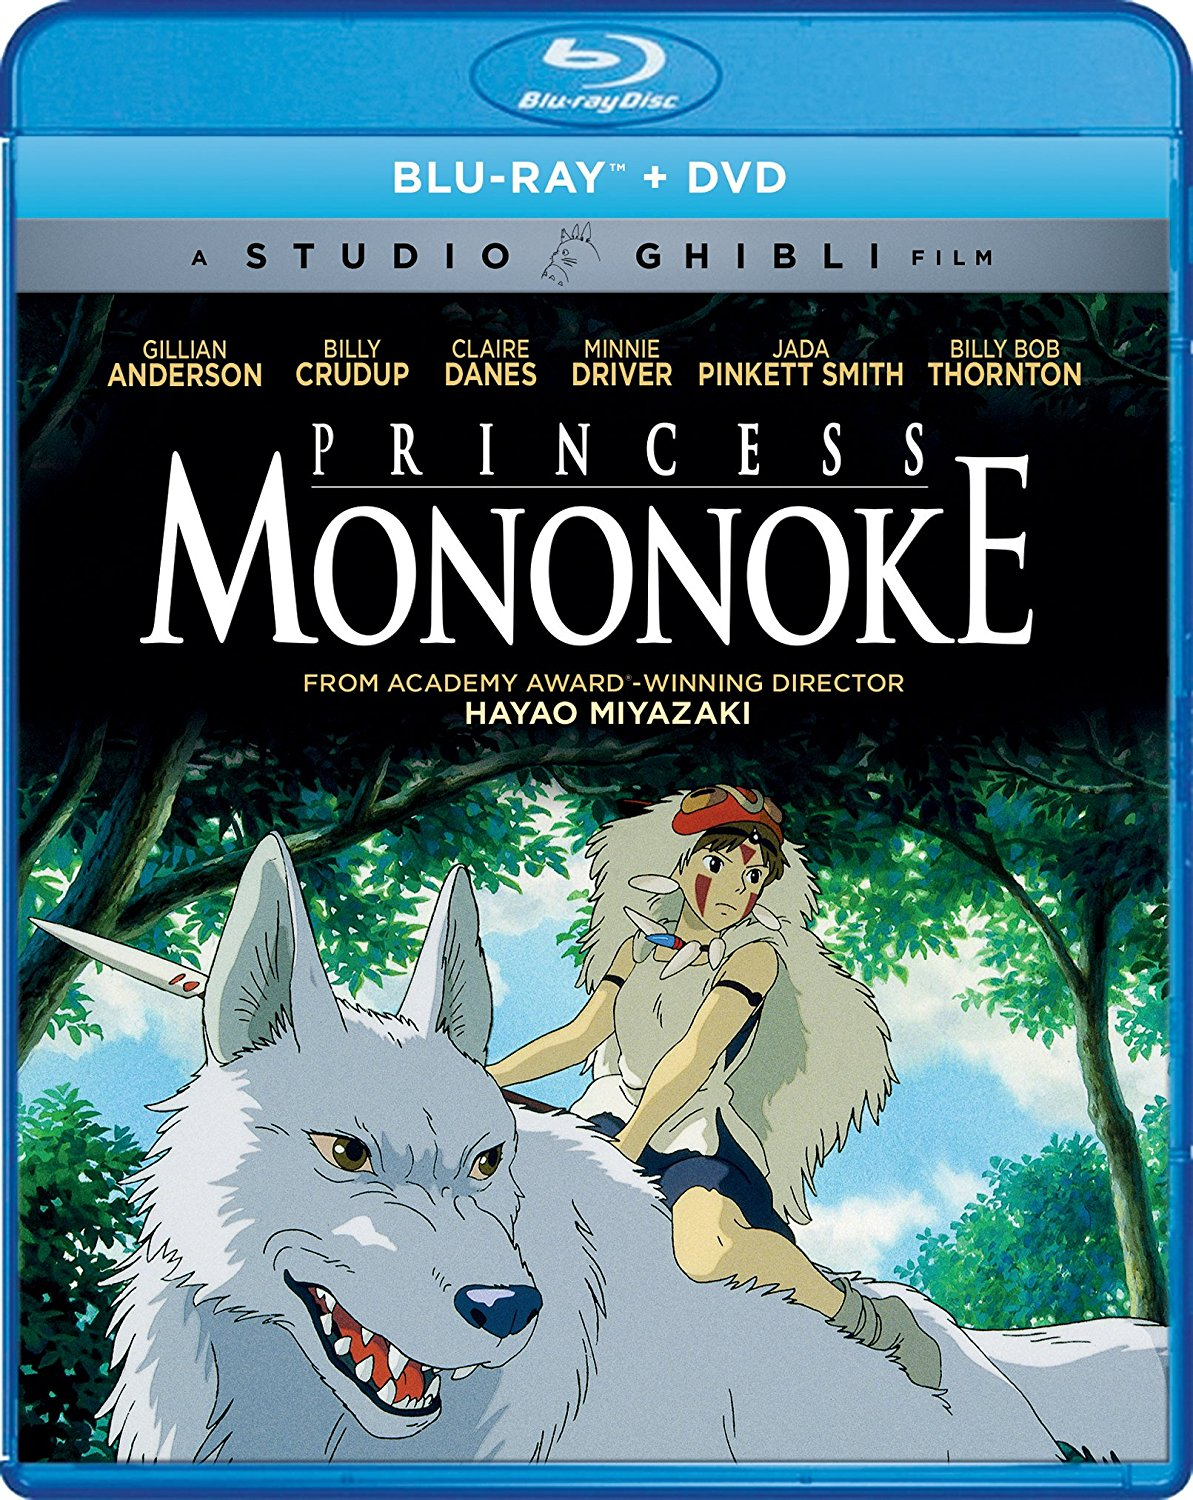 Princess Mononoke Blu-ray/DVD 826663181548